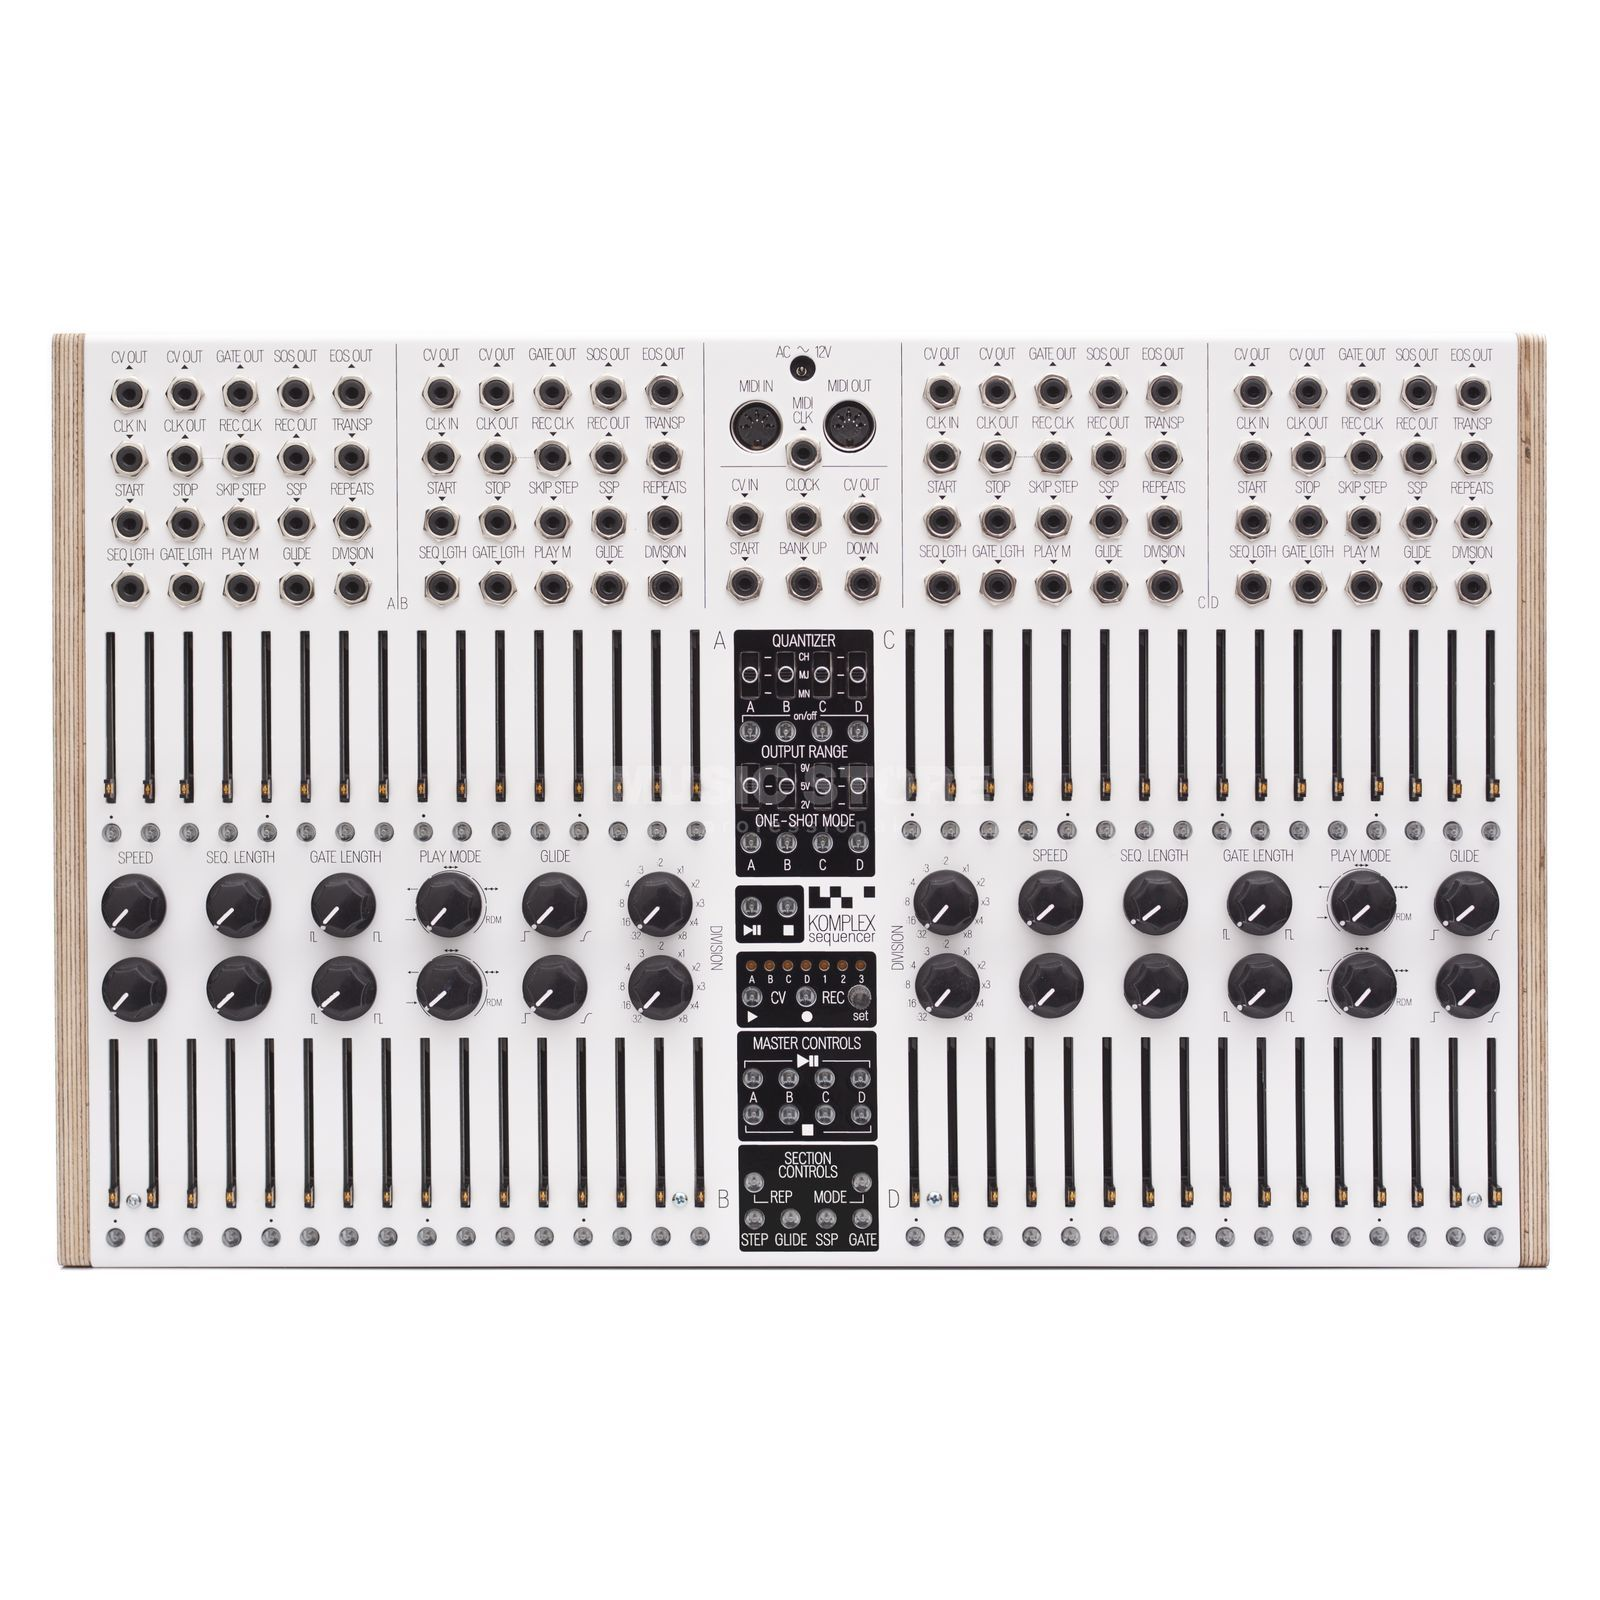 Koma Elektronik KOMPLEX SEQUENCER Produktbild